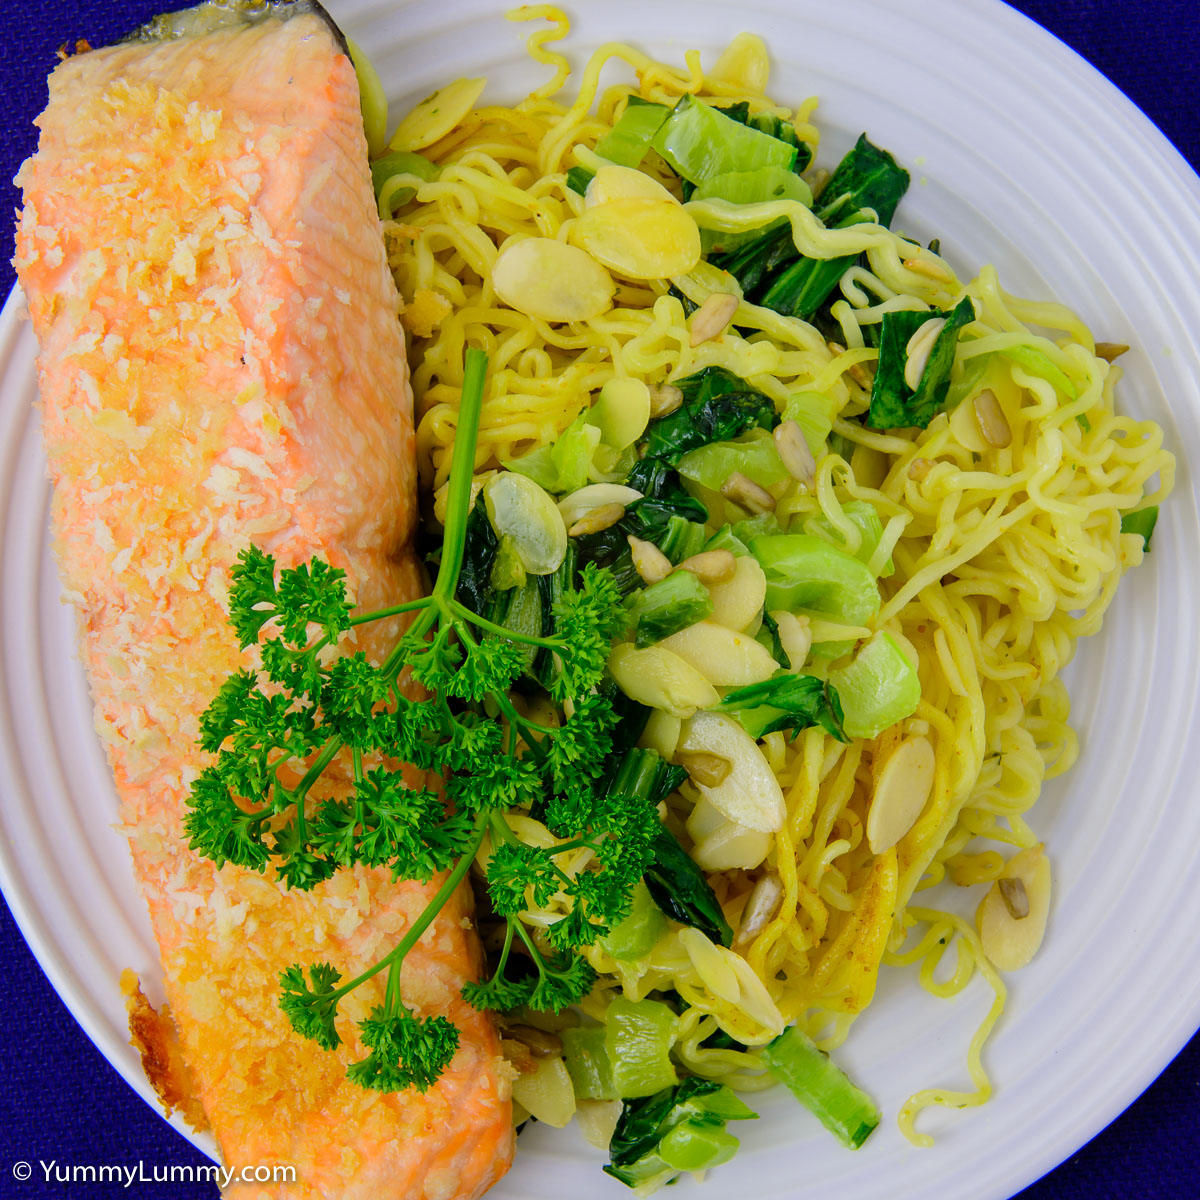 Monday dinner. Baked salmon with coconut noodles and bok choi.